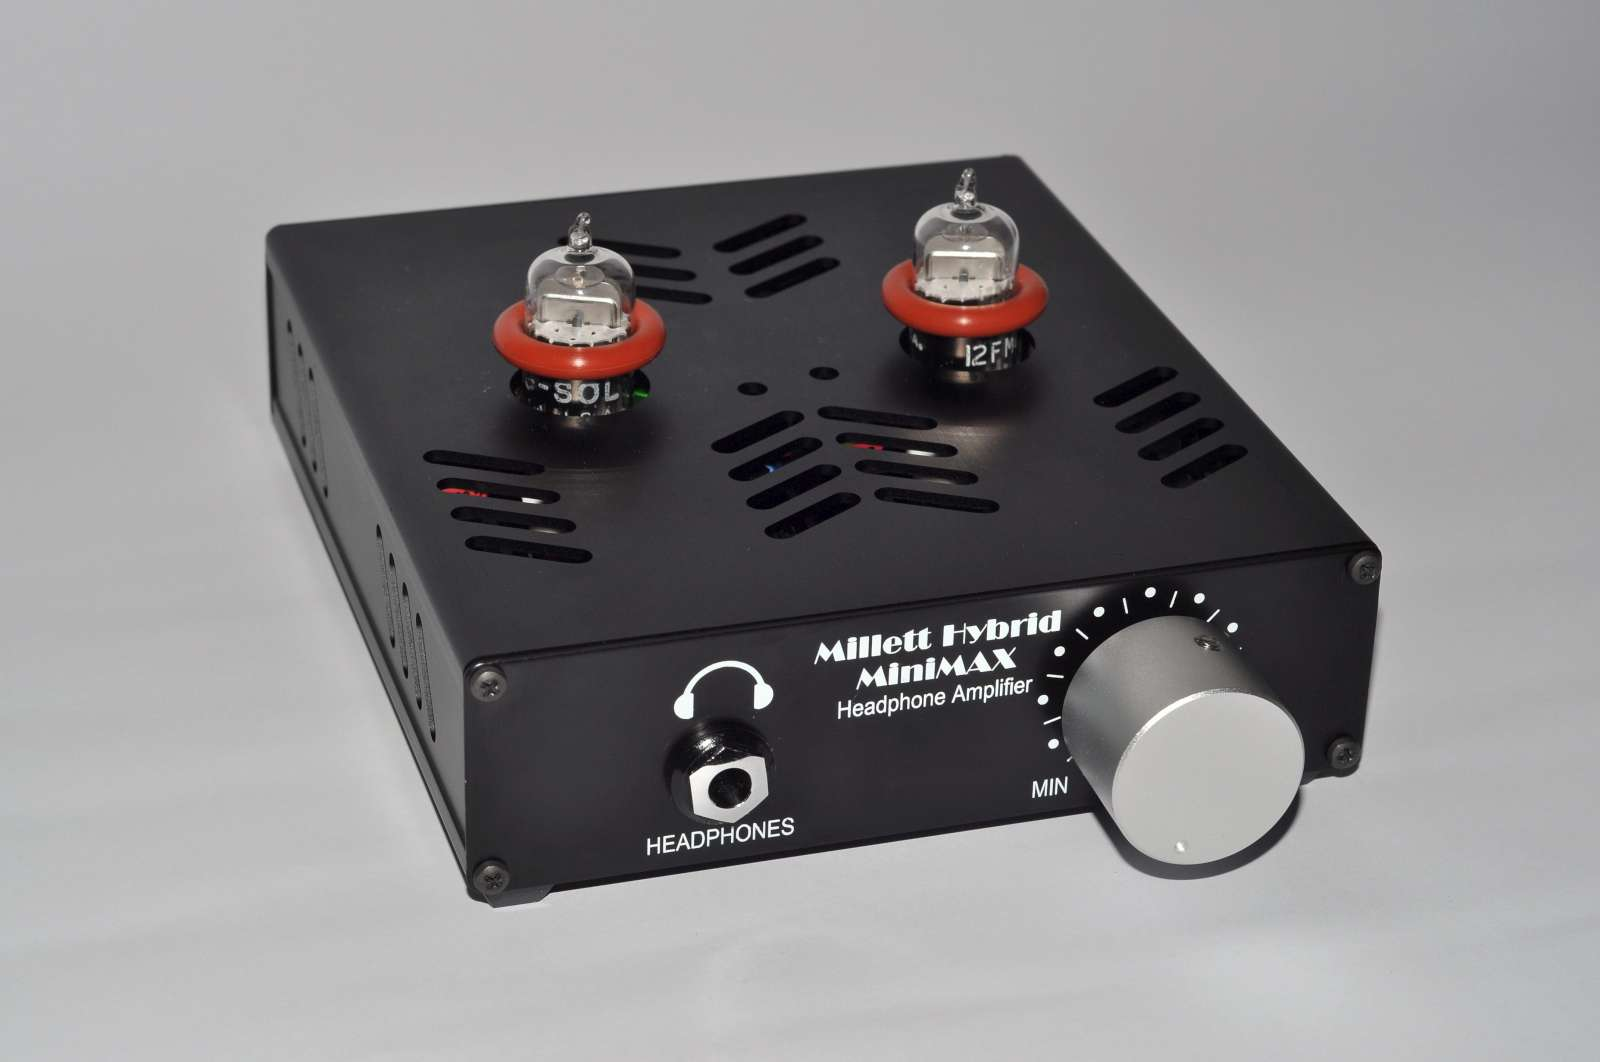 Millett Hybrid MiniMAX Headphone Amplifier